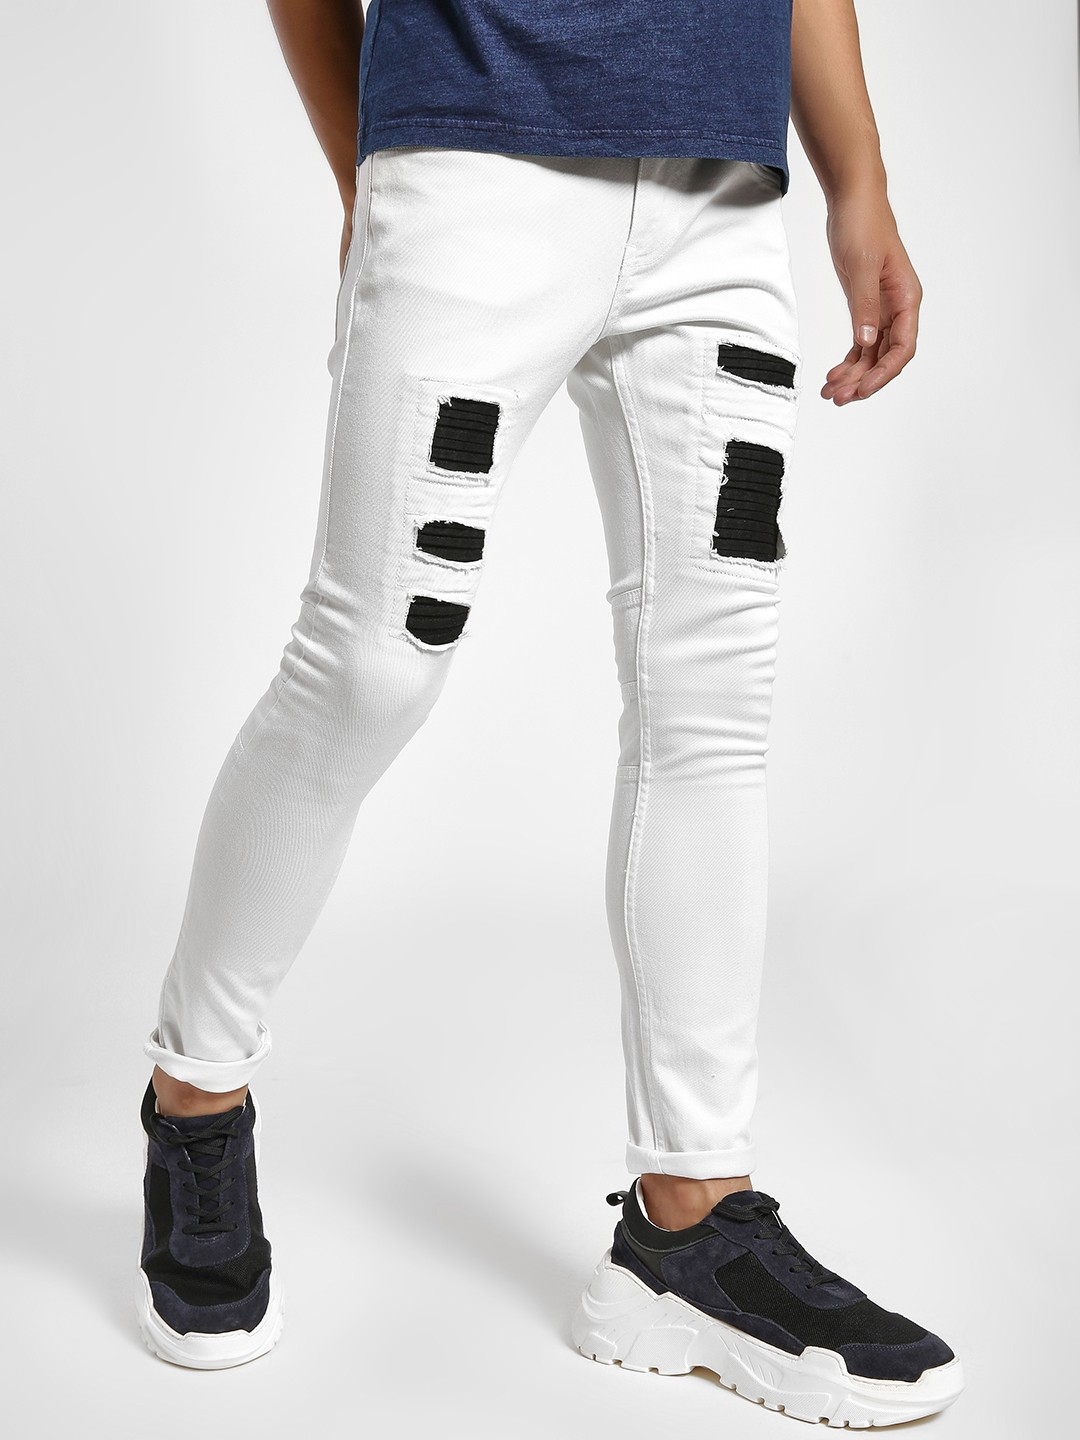 Styx & Stones White Distressed Inner Patch Slim Jeans 1